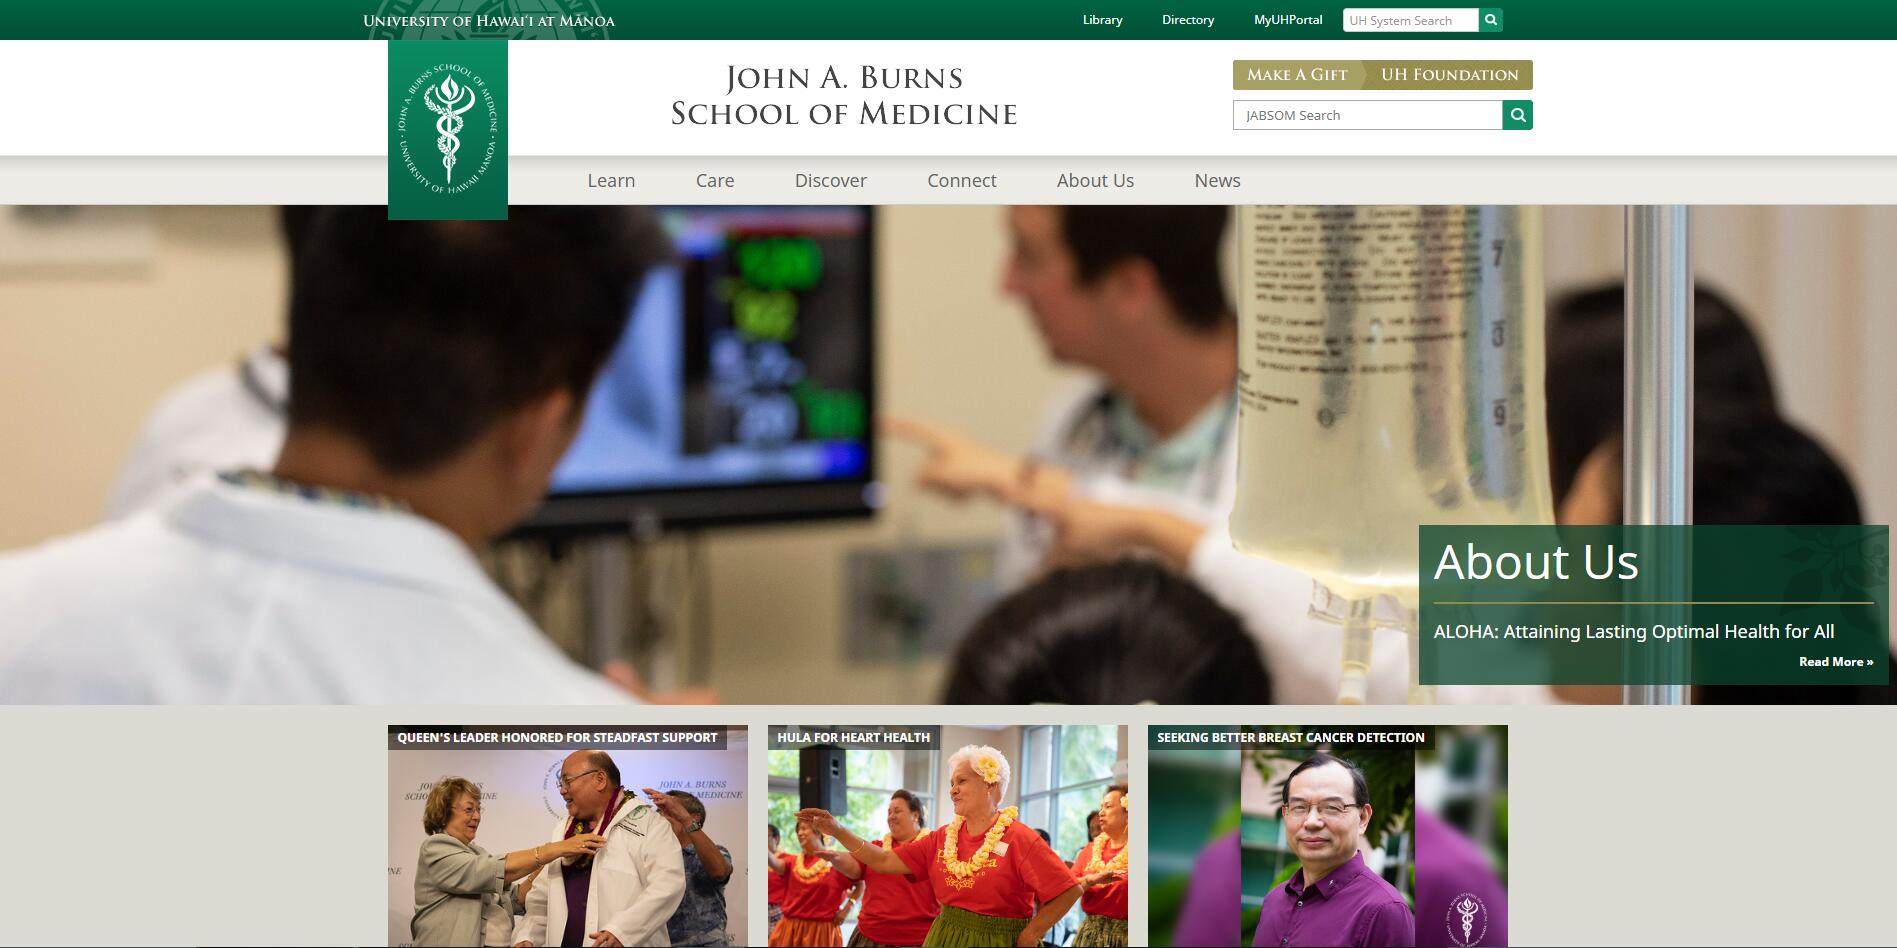 The John A. Burns School of Medicine at University of Hawaii--Manoa